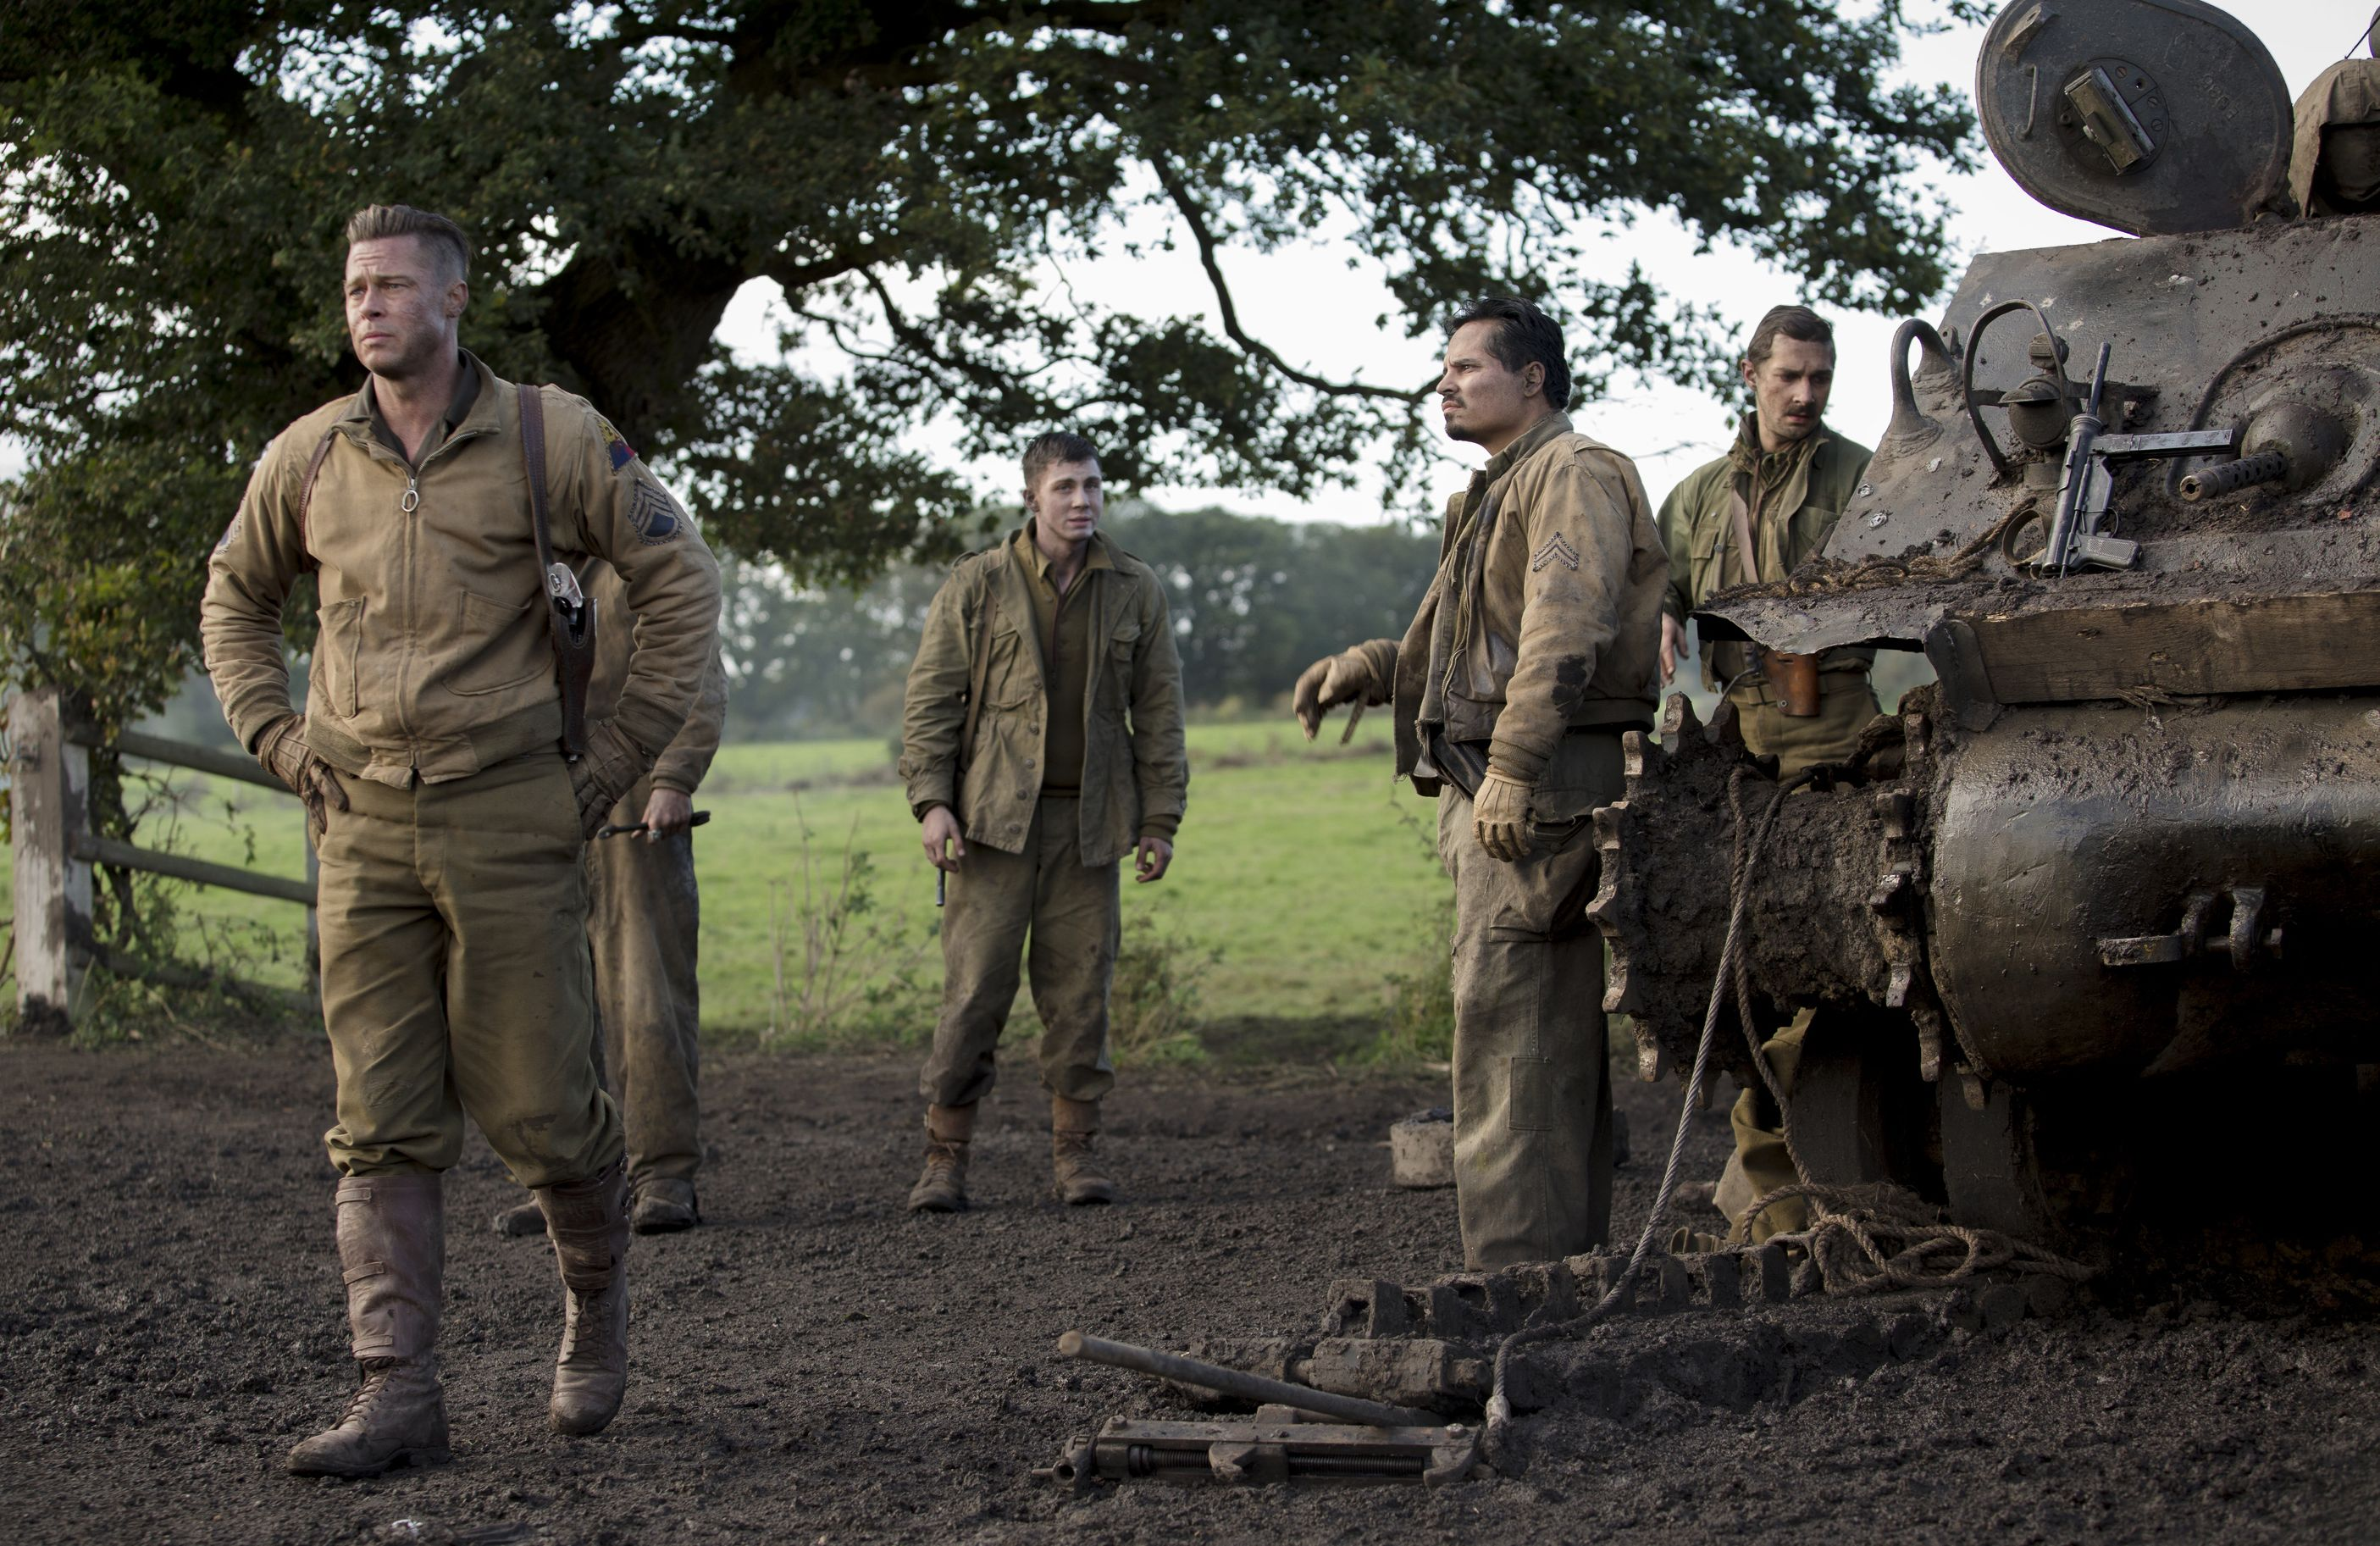 Brad Pitt and his crew in Fury